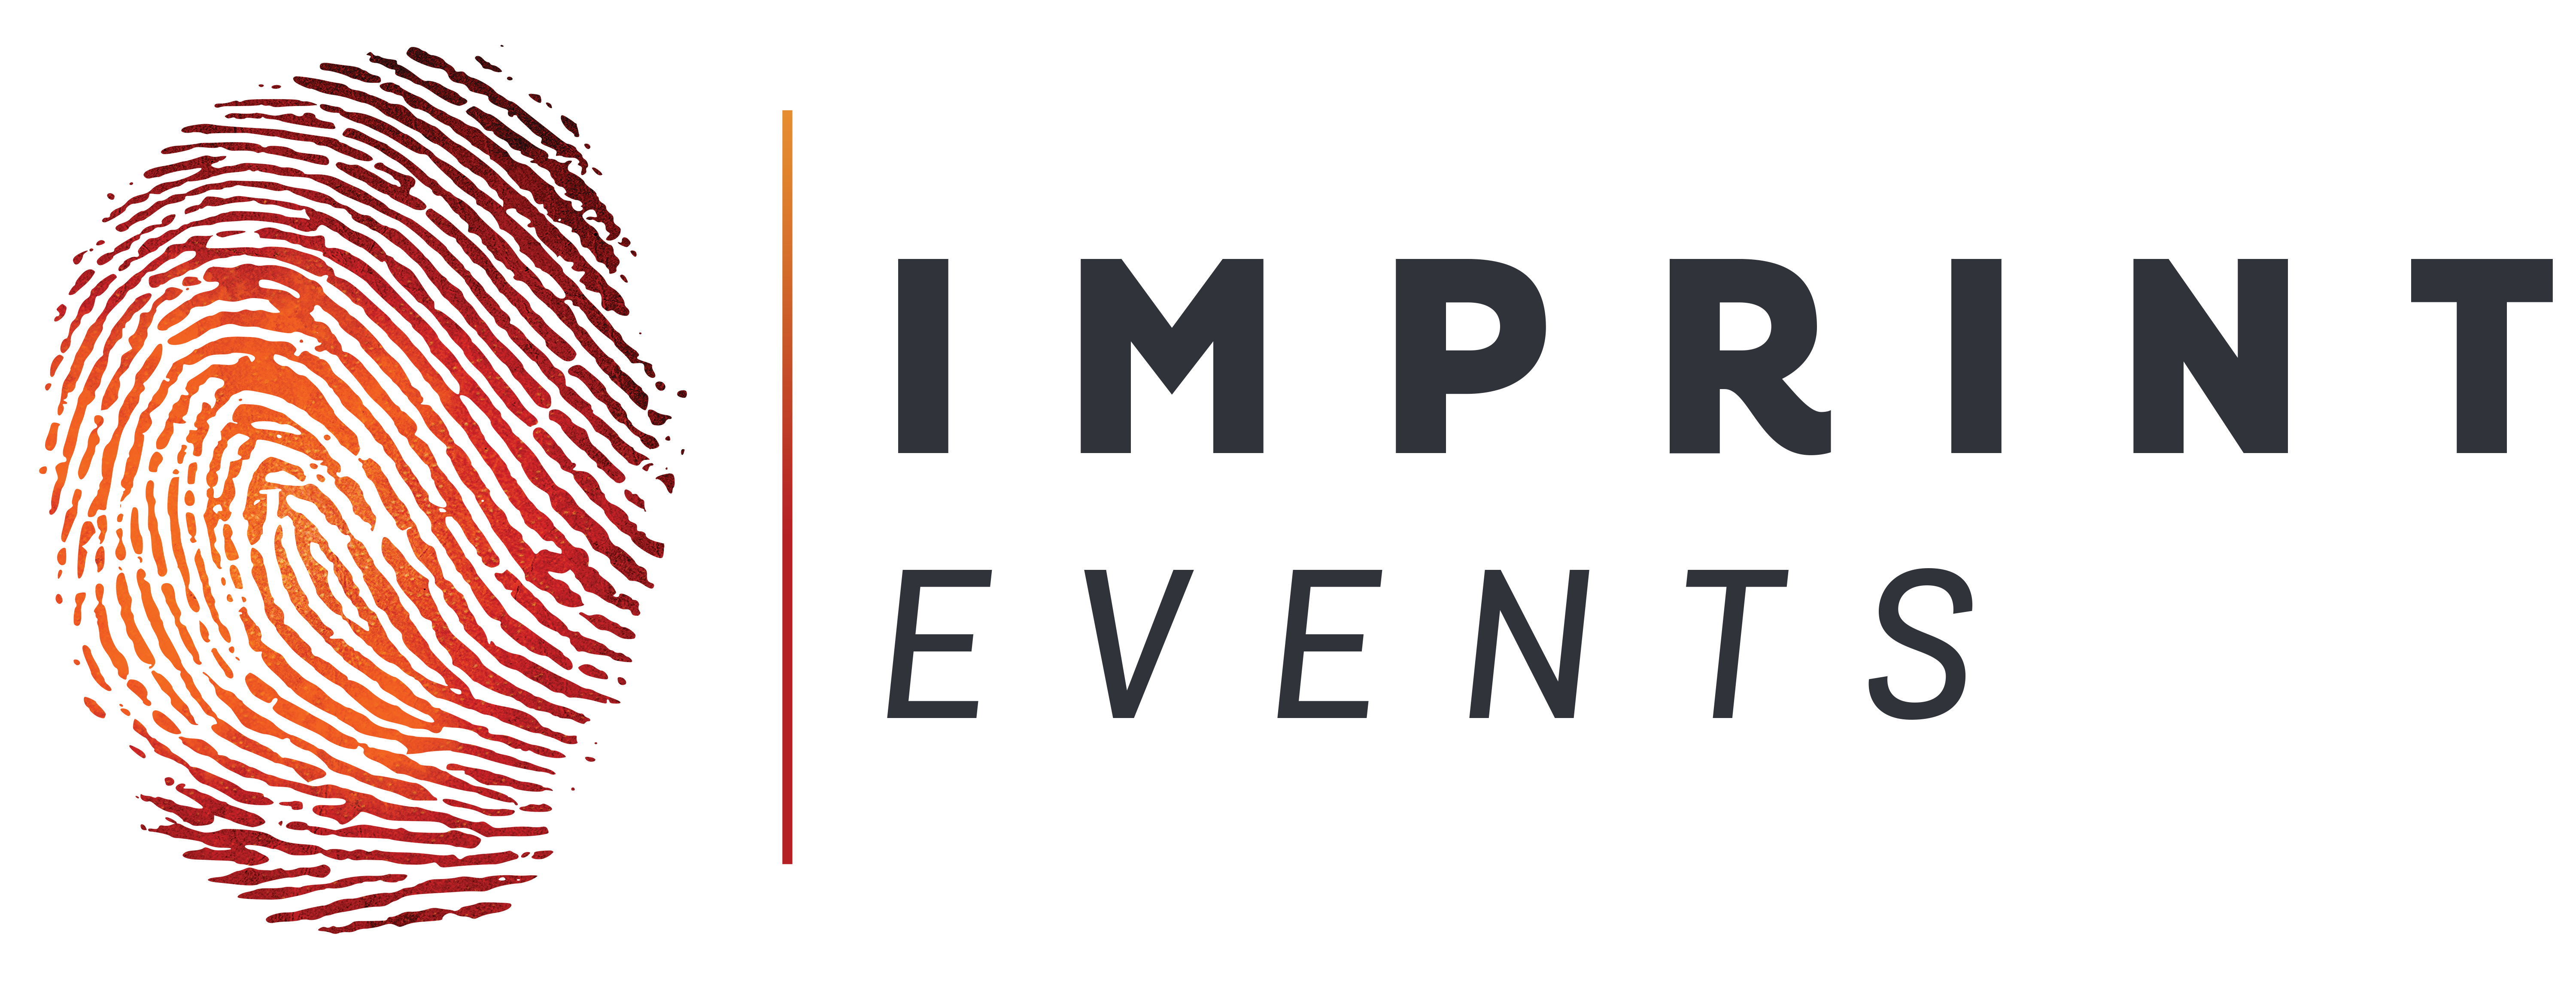 Imprint Group destination management company dmc